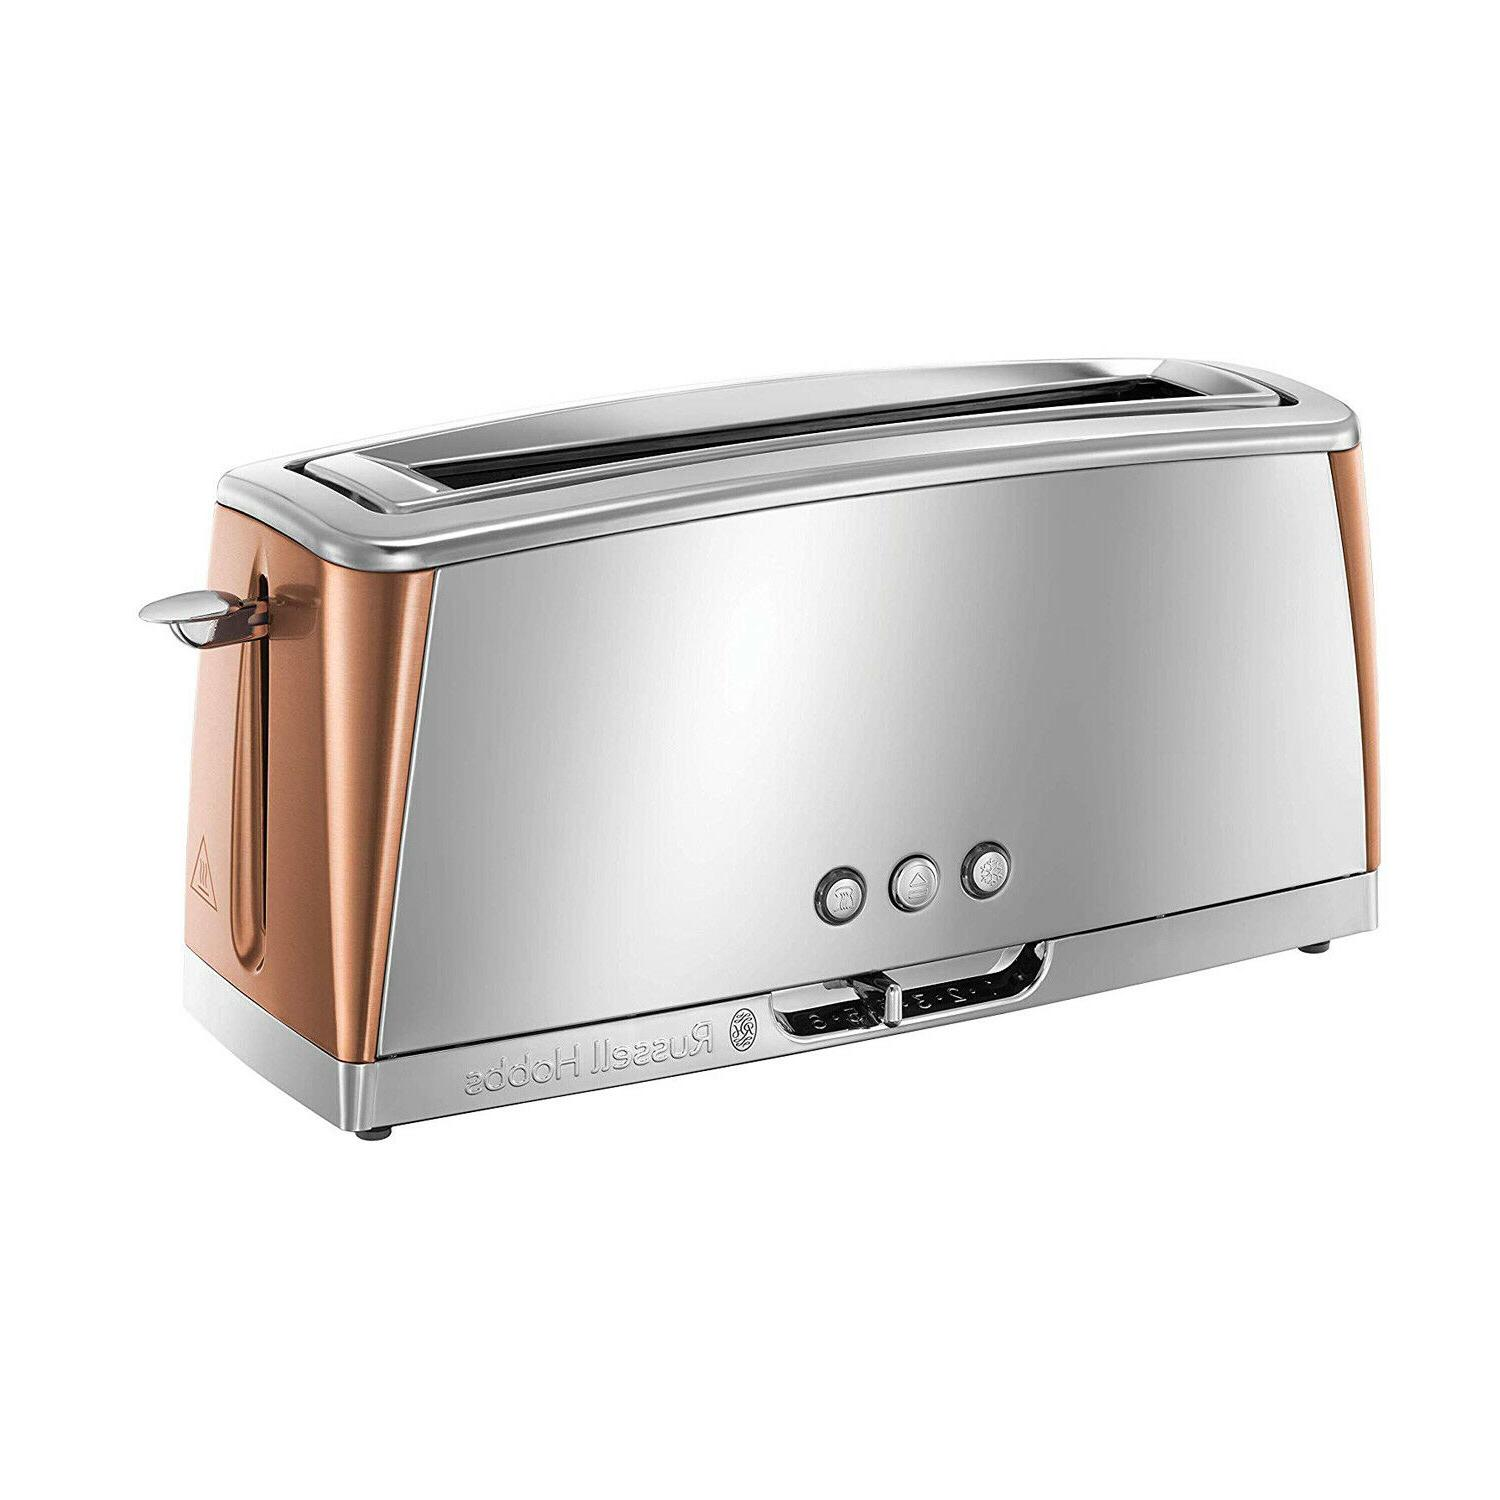 Russell Stainless Luna 2 Slot Toaster - 24310